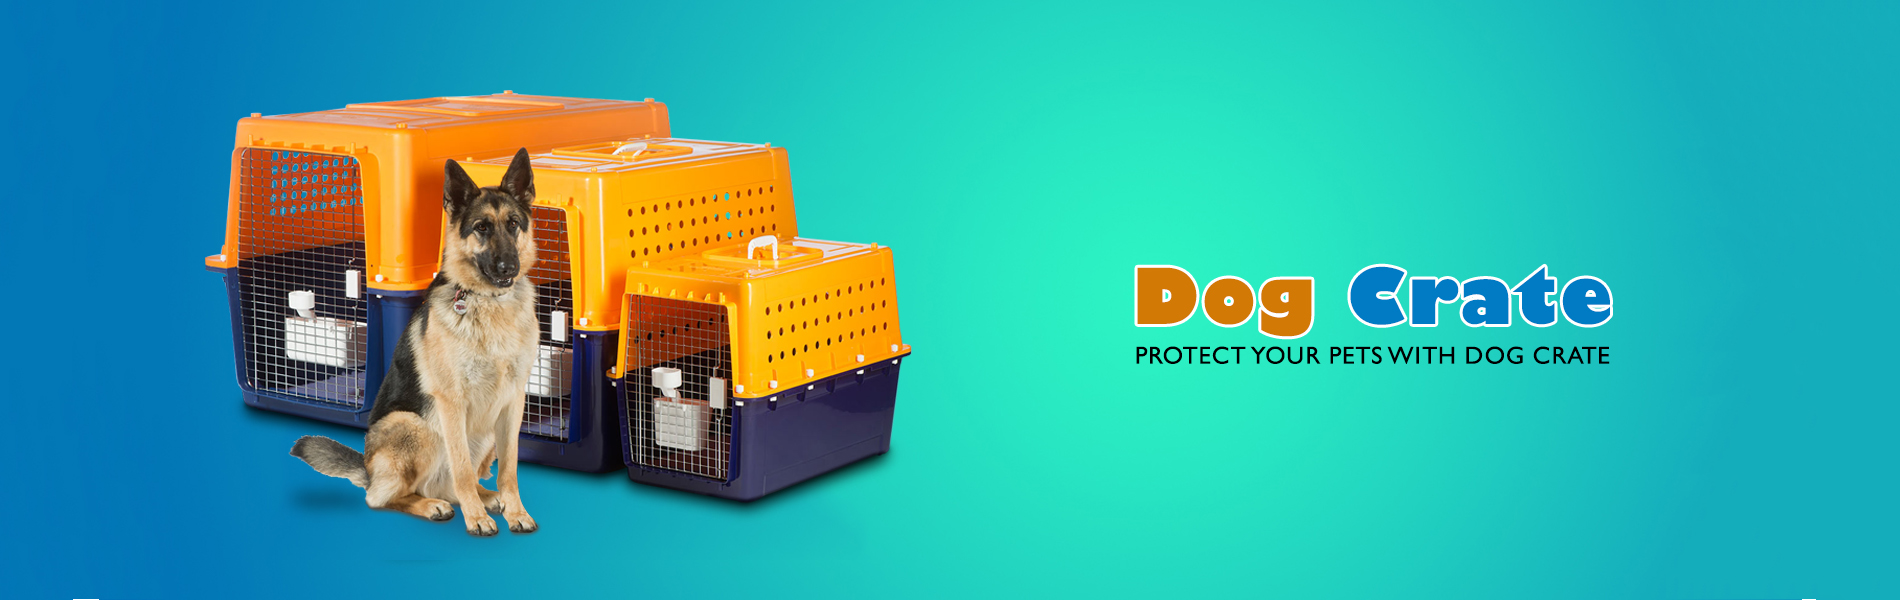 dog crate official